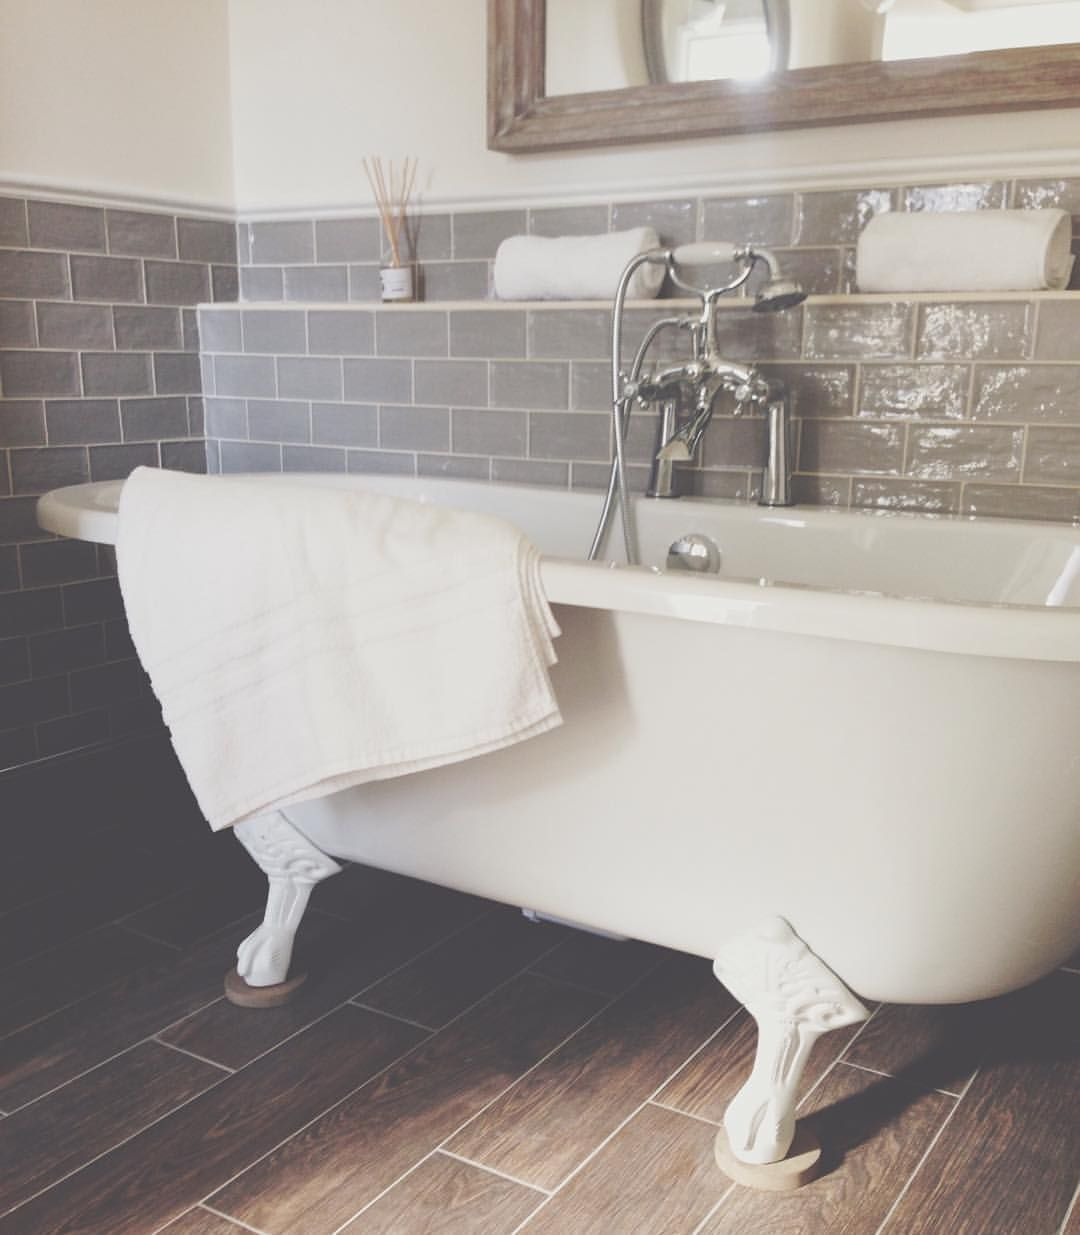 Beautiful This Is One Of The Roll Top Baths At The Kedleston Country House. #bathrooms